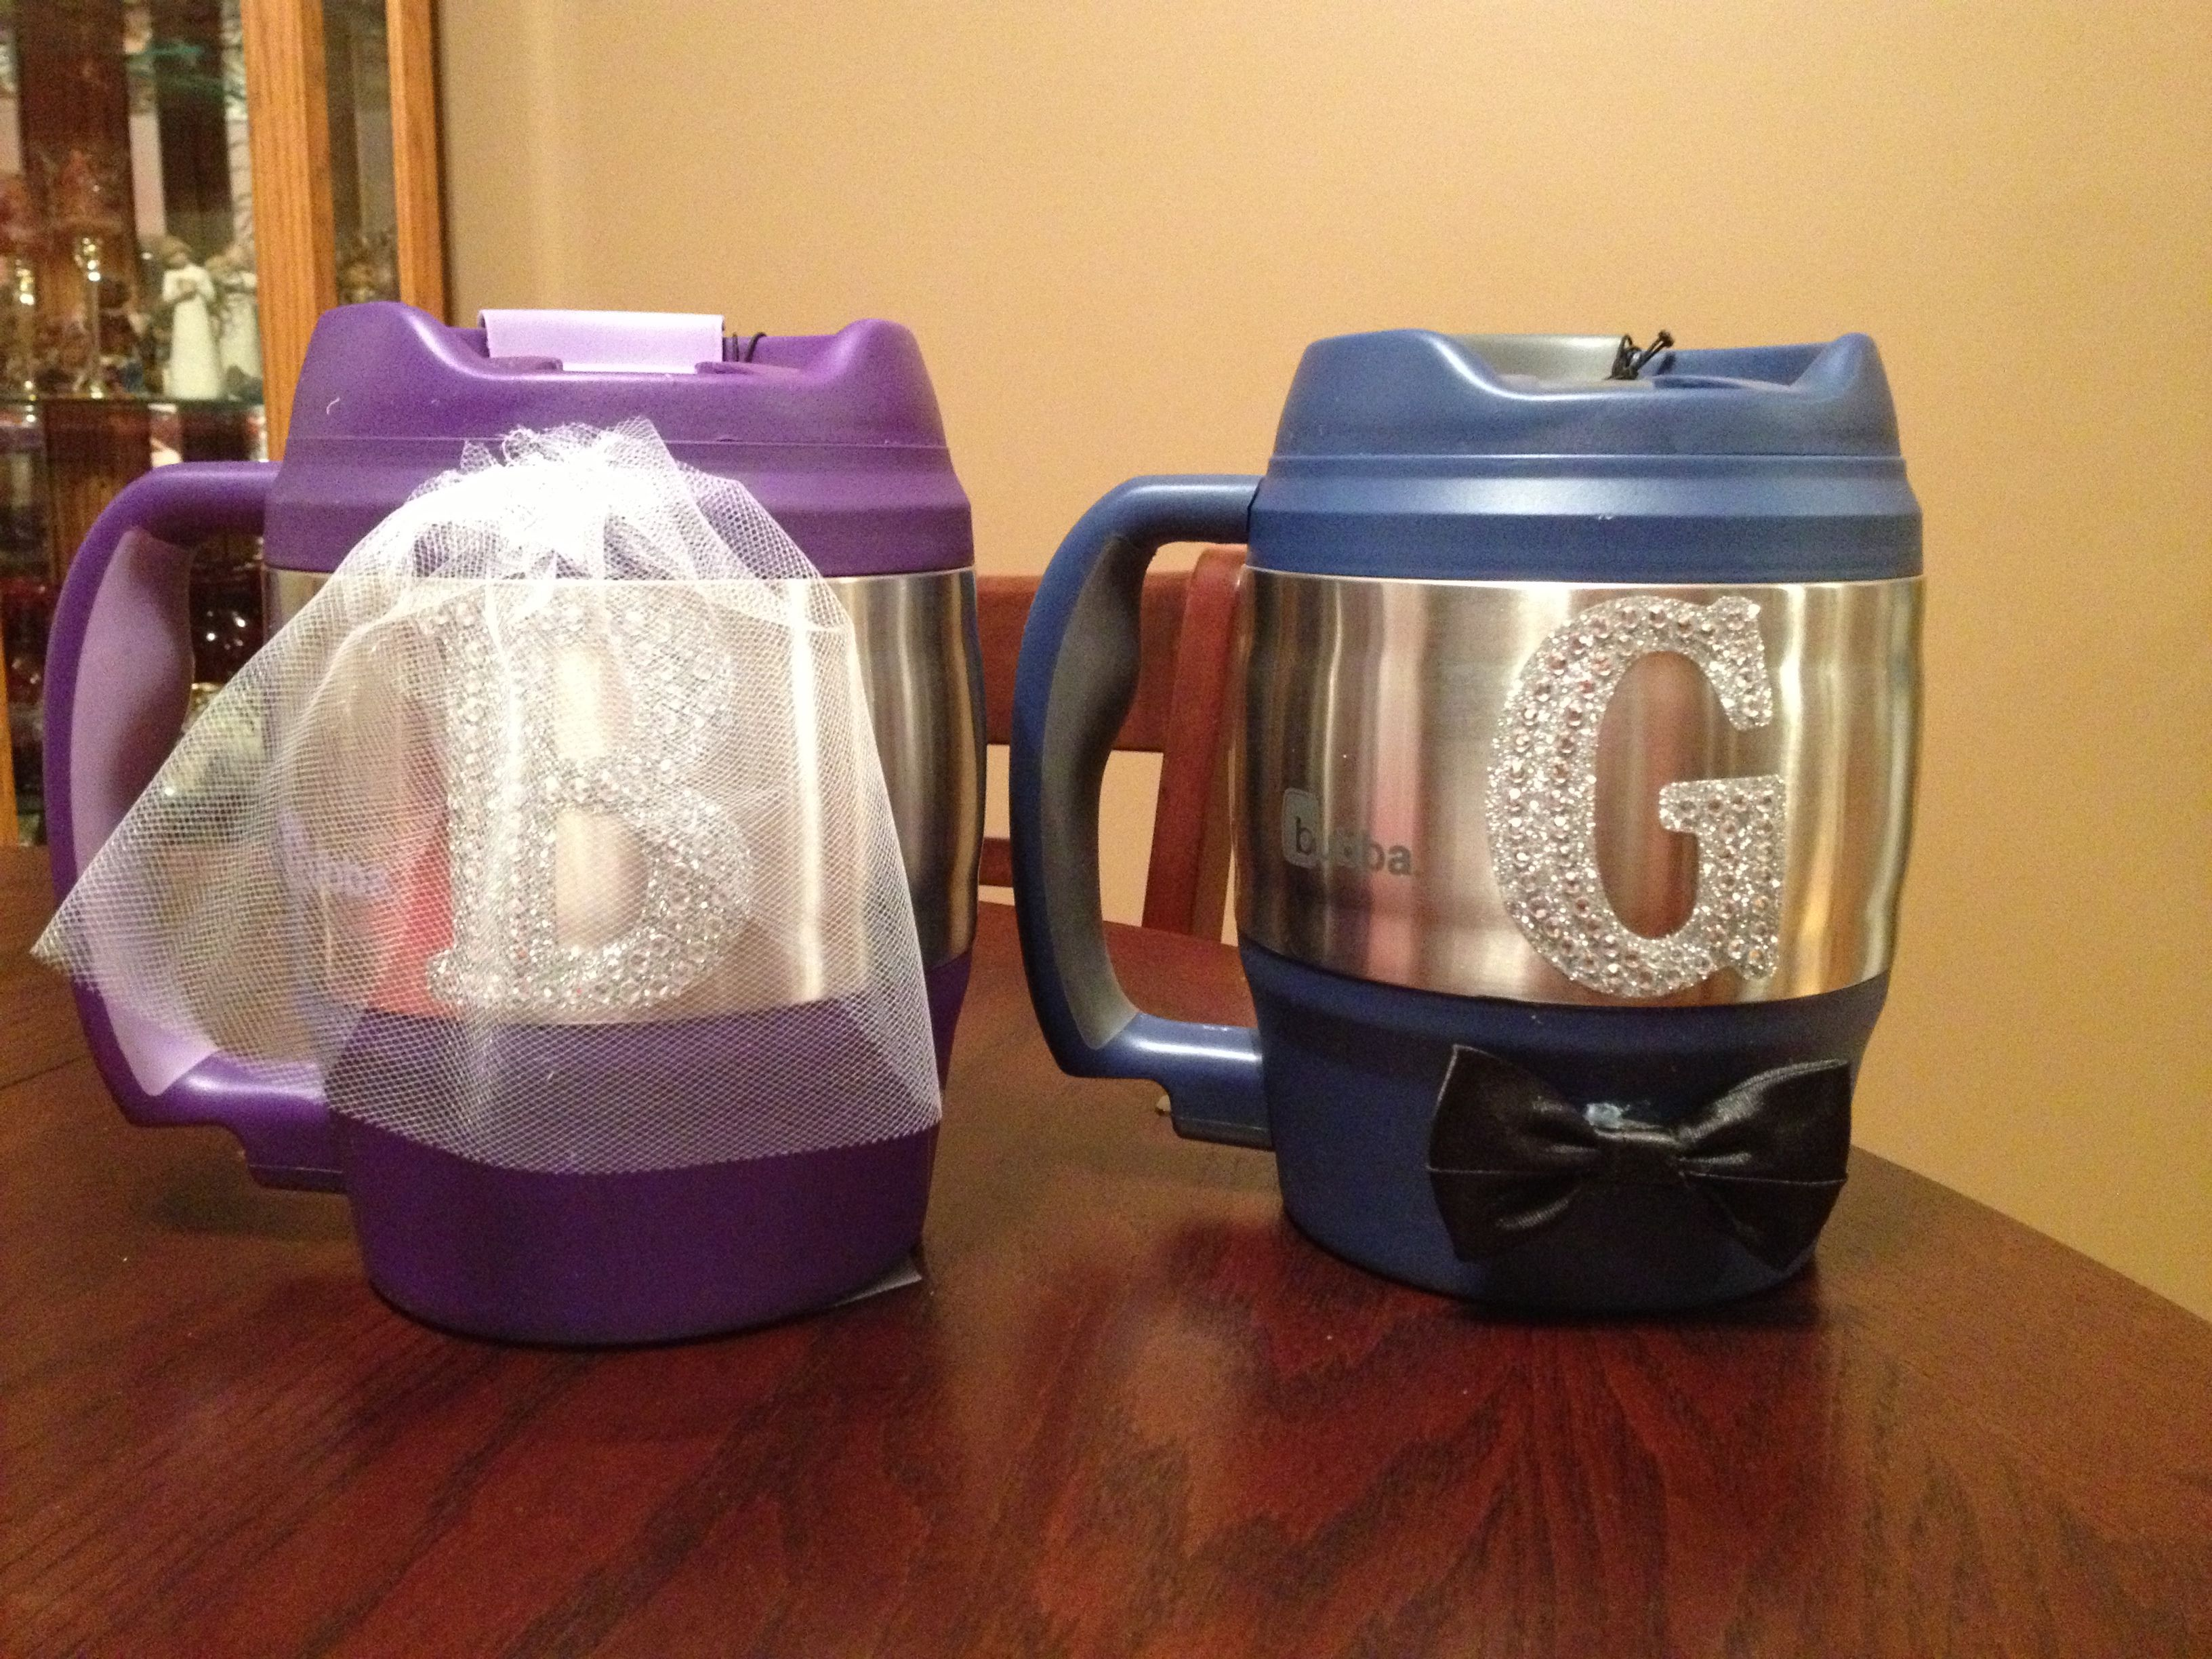 Handmade Wedding Gifts For Bride And Groom: Destination Wedding Bubba Keg For The Bride And Groom! DIY